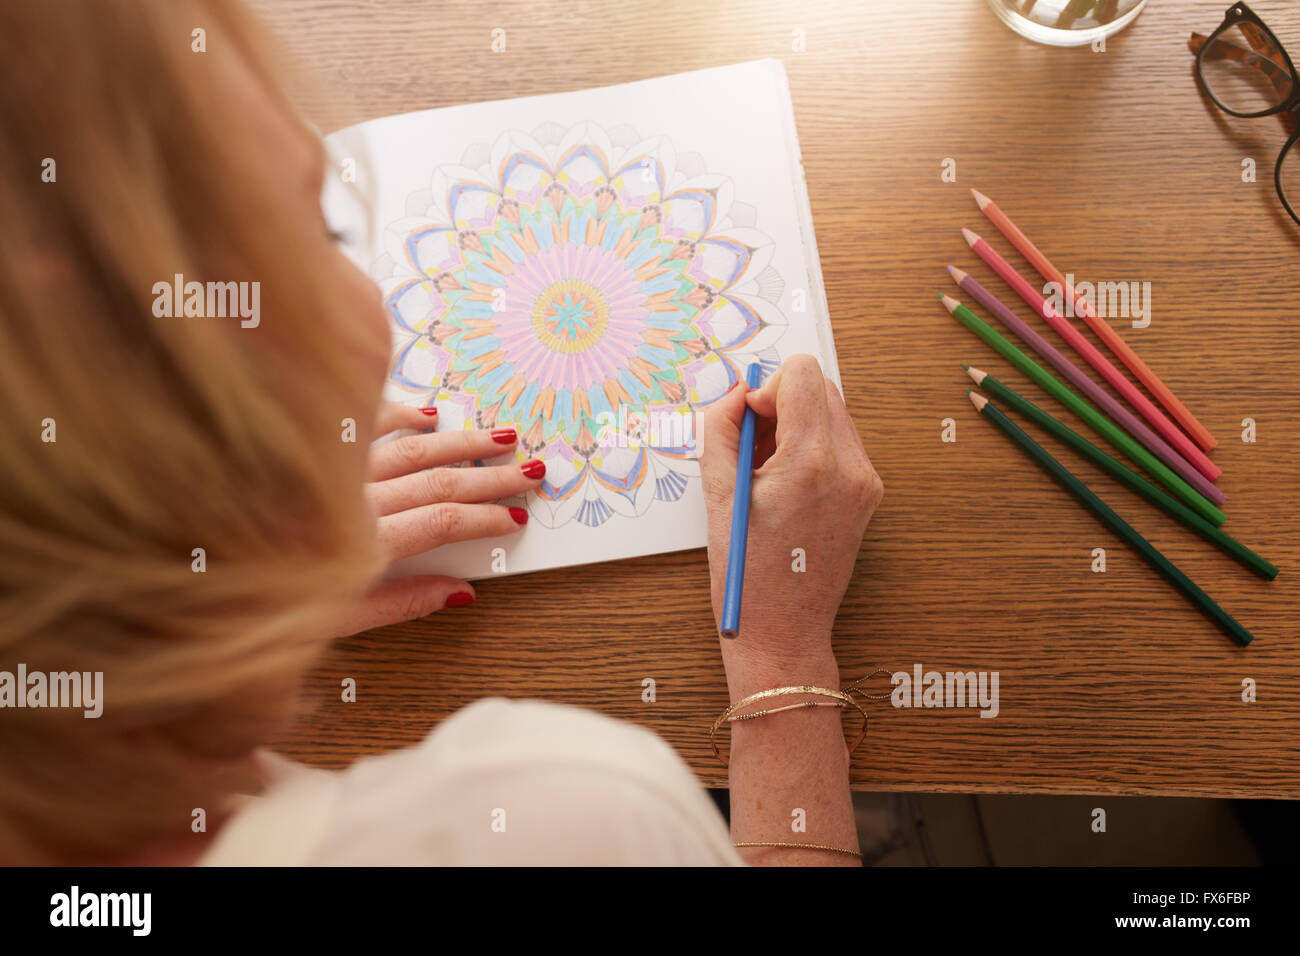 Overhead view of woman drawing in adult coloring book with color pencils. Anti stress exercise at home. - Stock Image